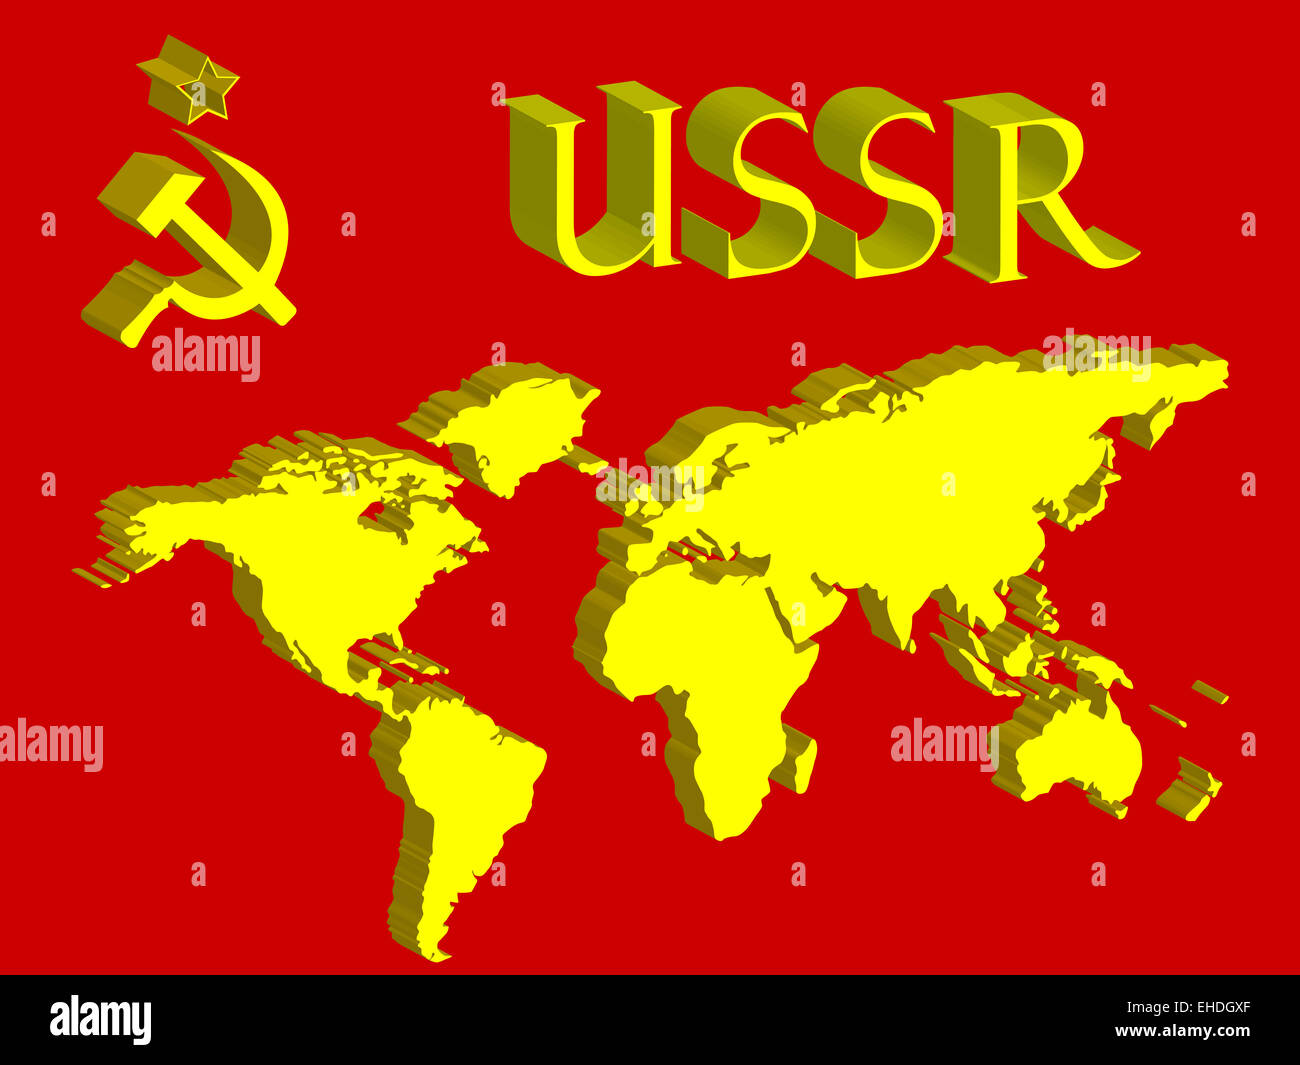 Ussr map stock photos ussr map stock images alamy ussr symbol and world map stock image publicscrutiny Gallery